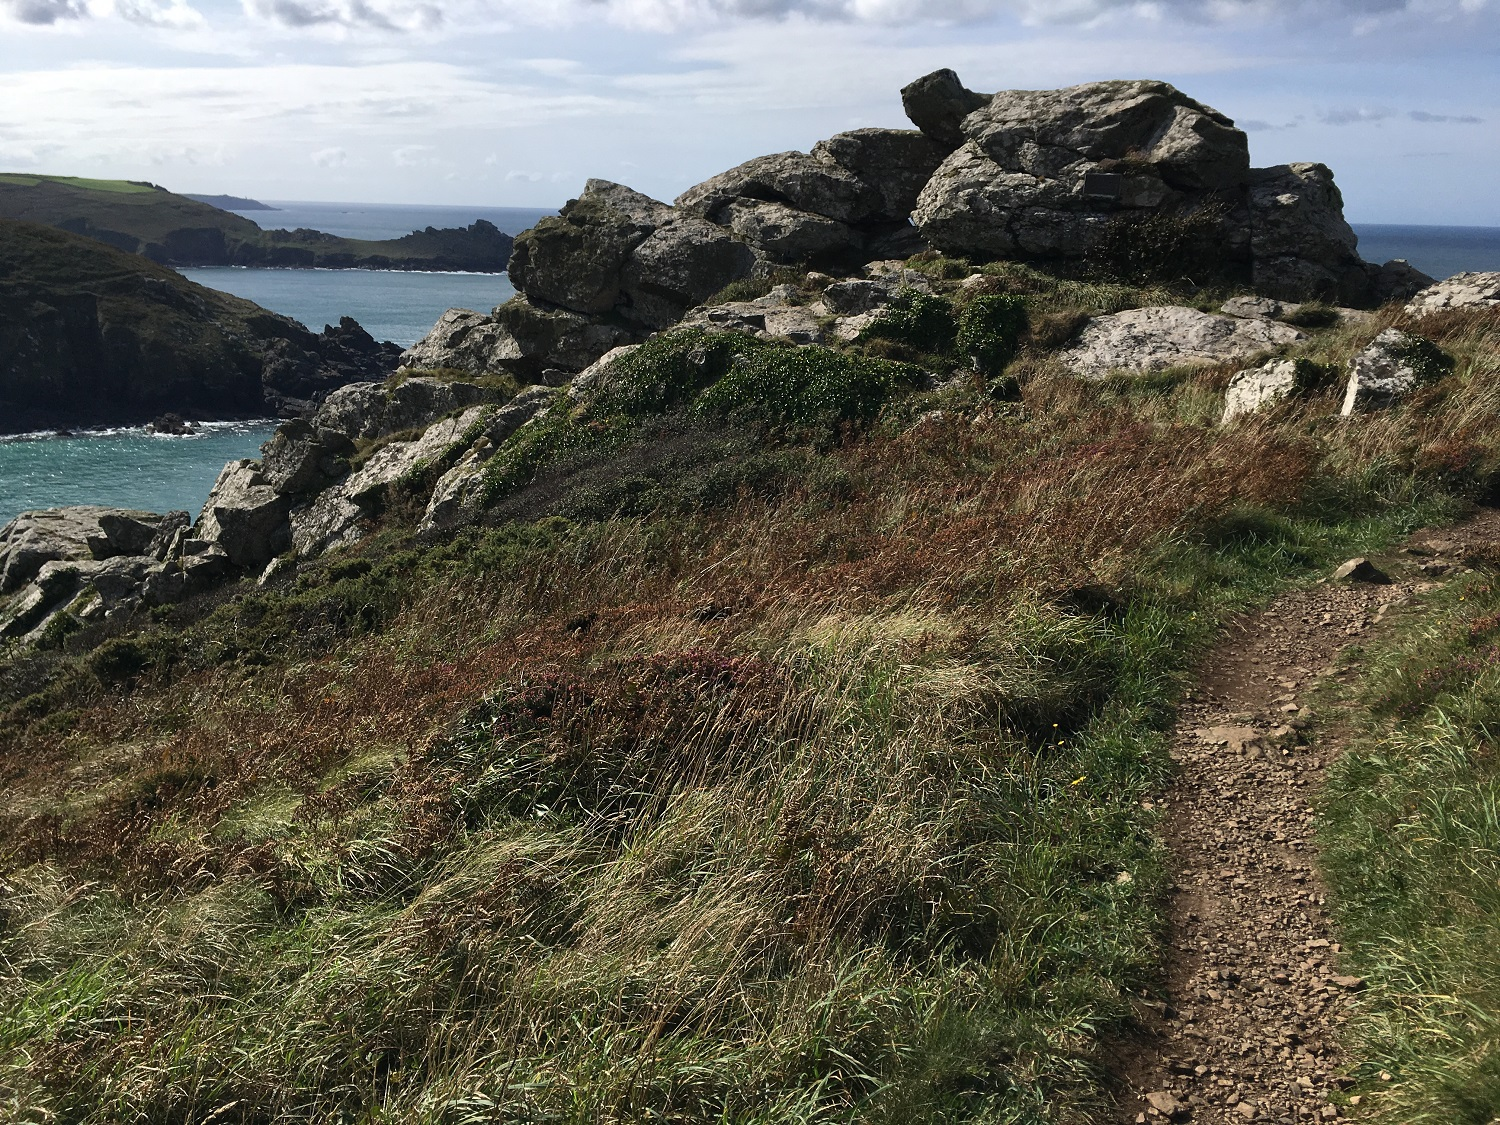 Great Circle Route, Cornwall & South West England Walks & Gardens, Zennor Head